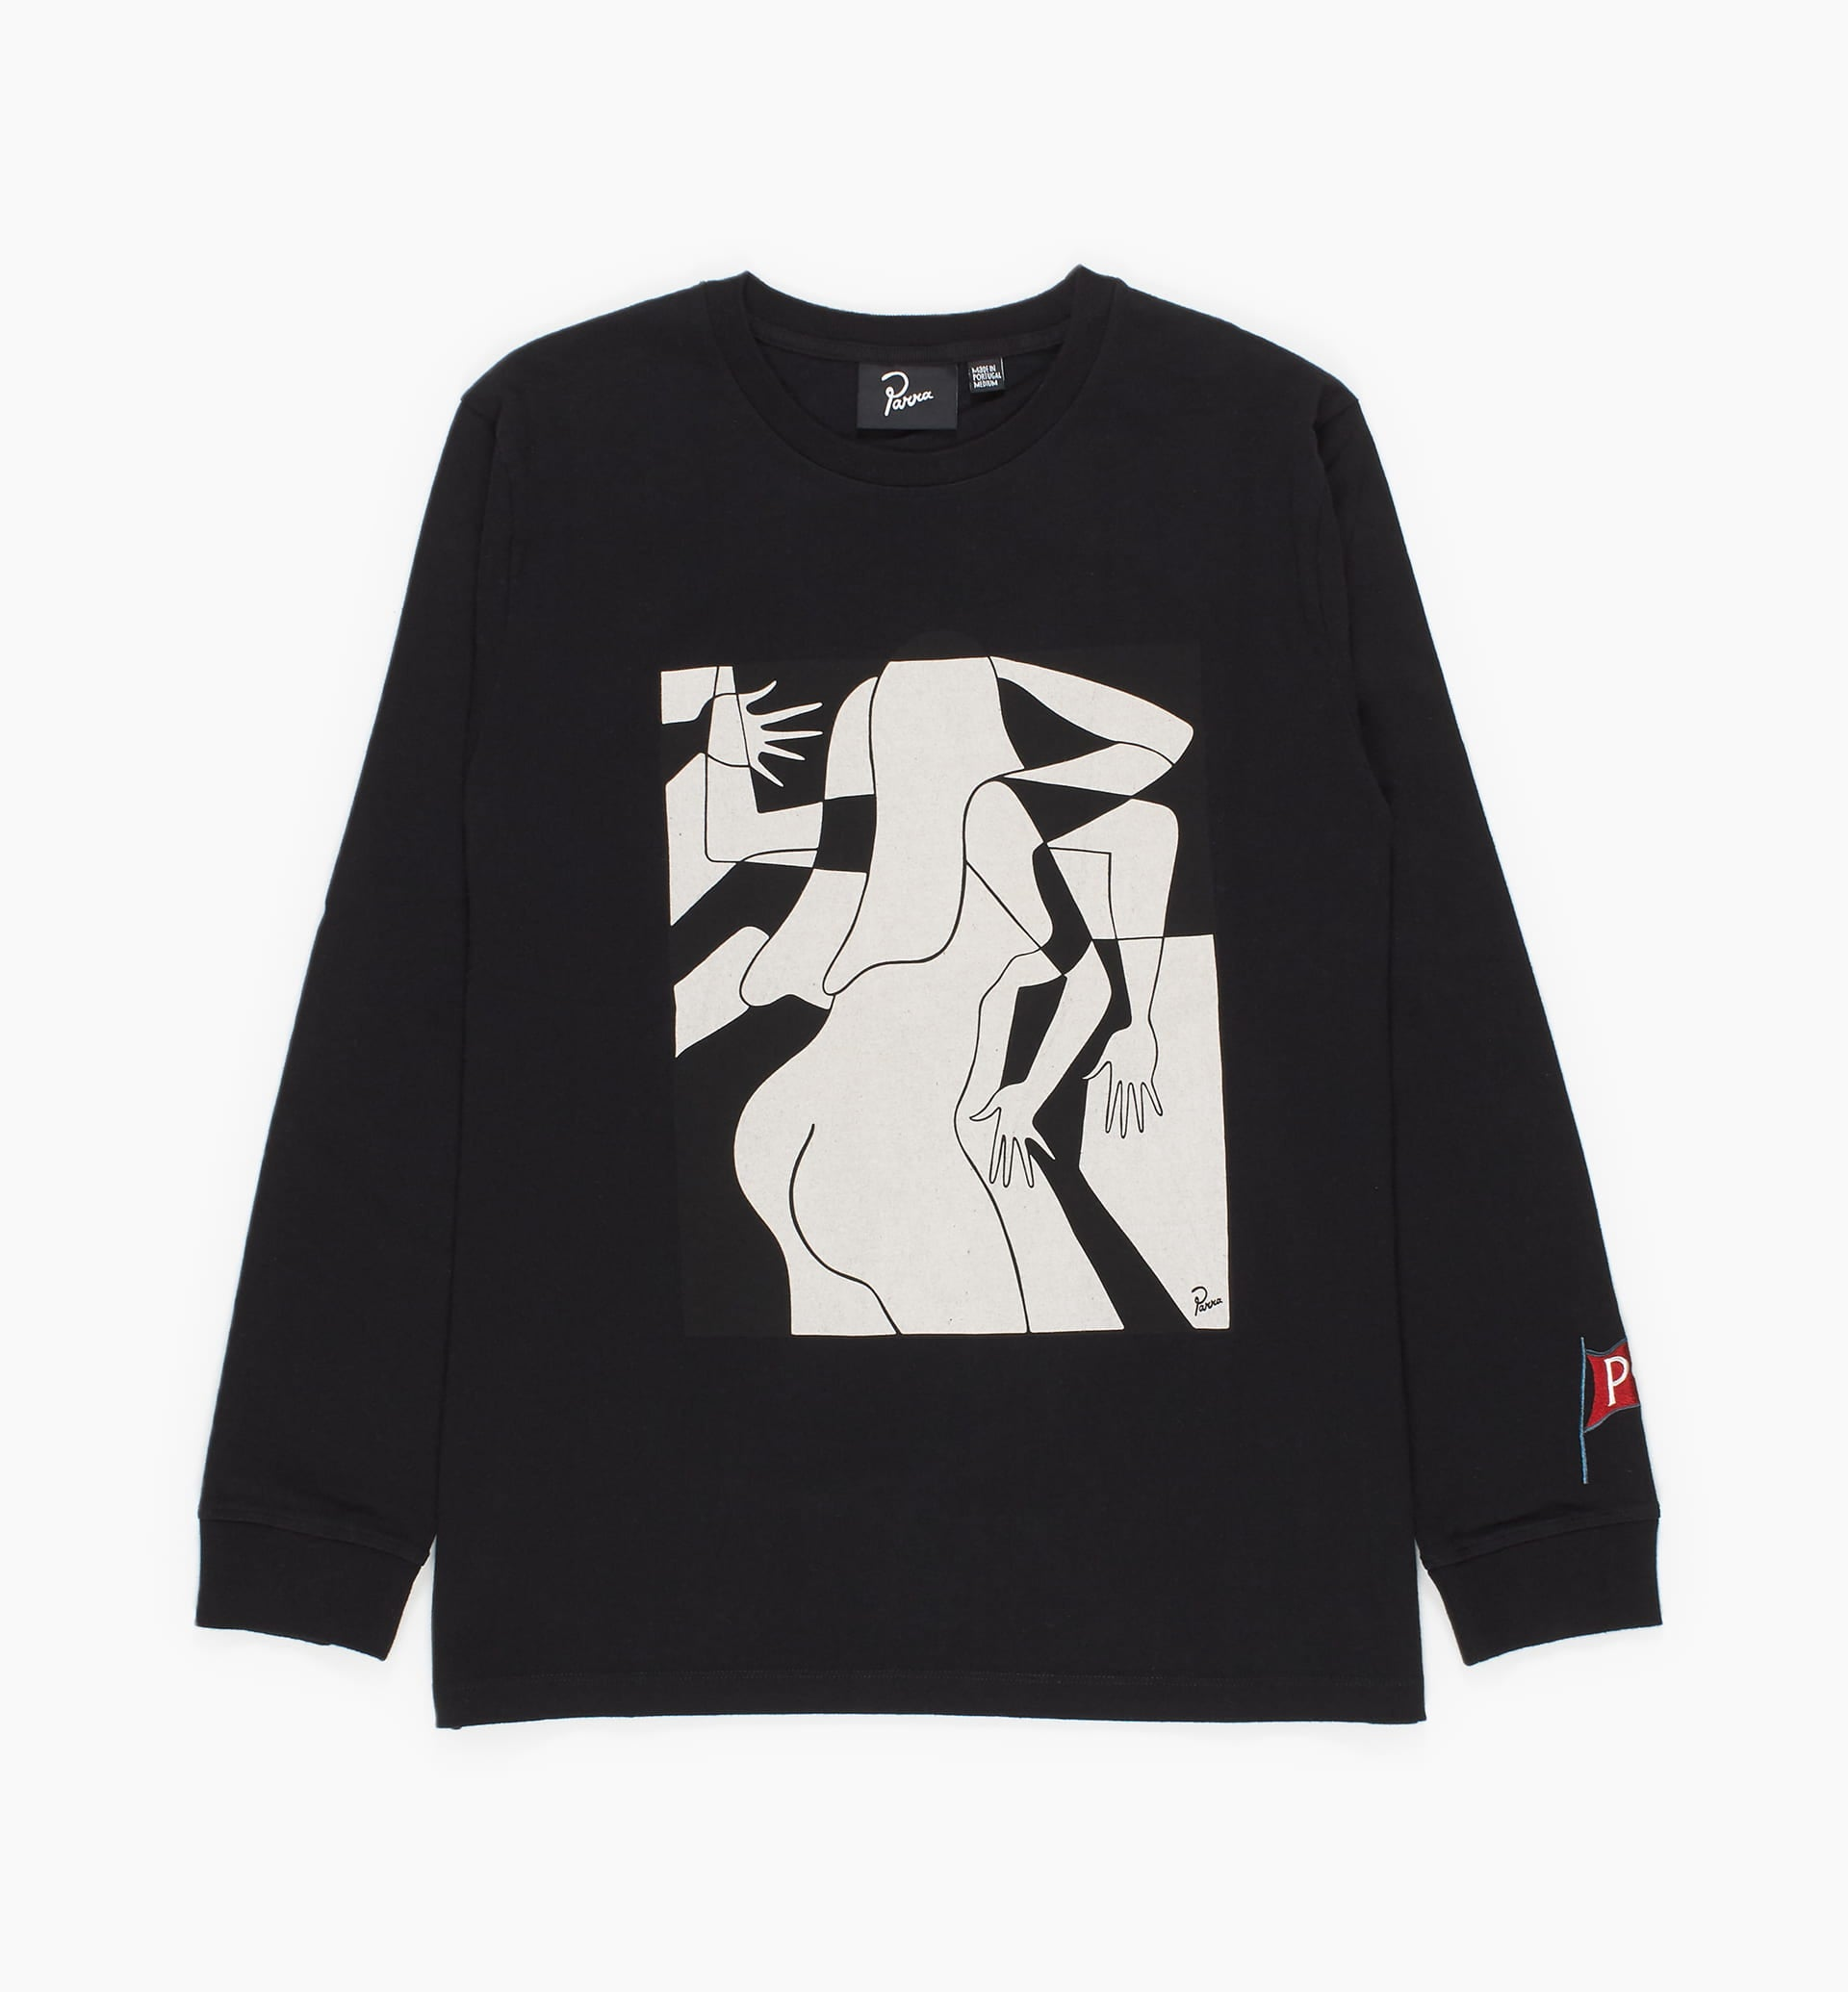 Parra - artist businesswoman long sleeve t-shirt